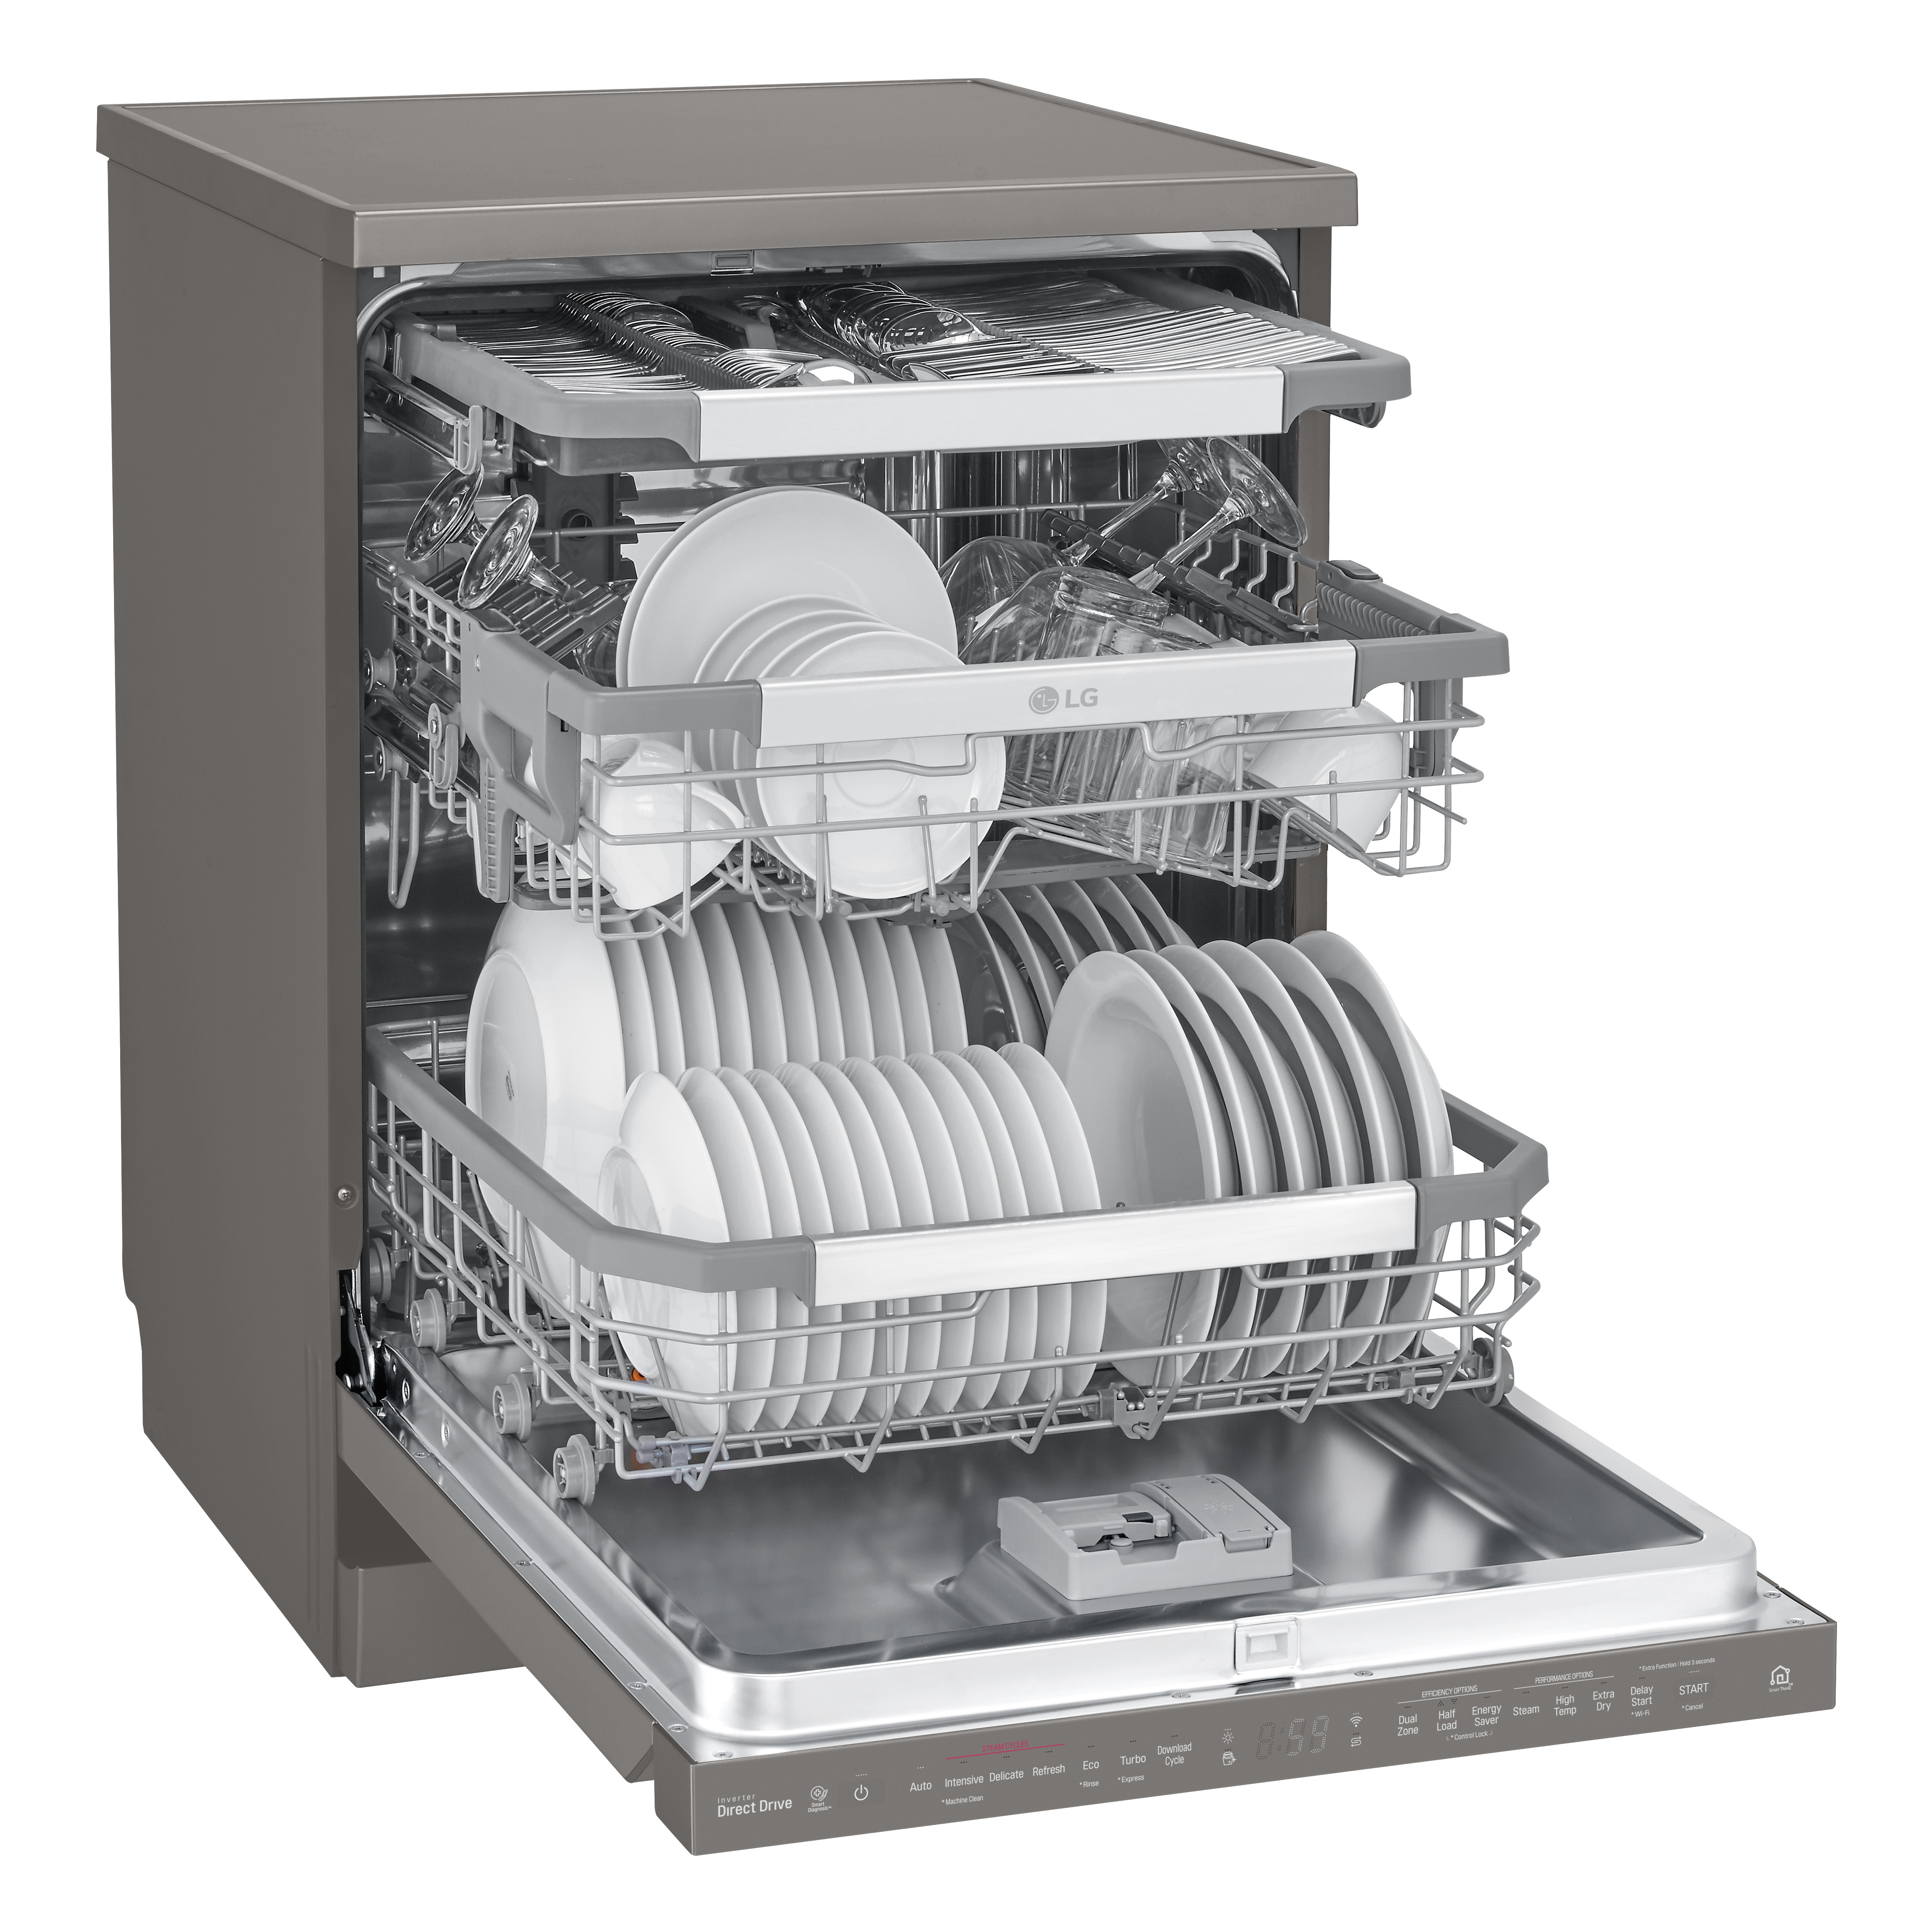 LG SteamClean™ dishwasher completely open and filled with various clean dishes on the three racks.